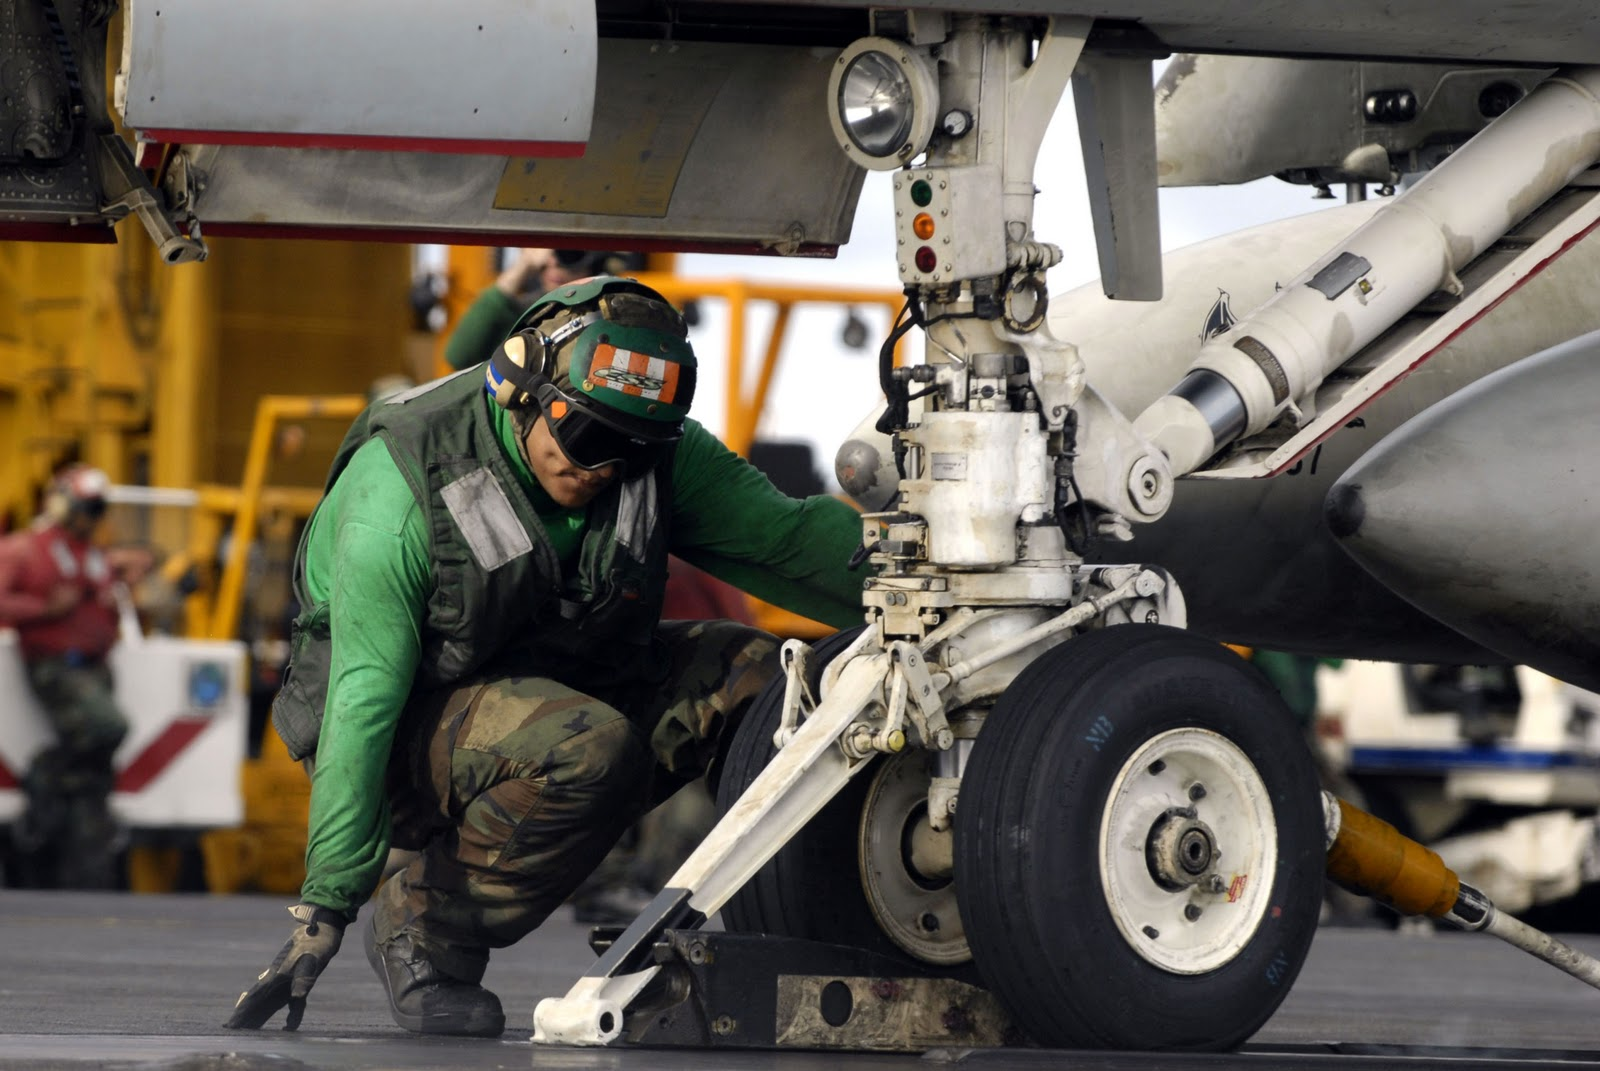 US_Navy_070910-N-7883G-009_Airman_Luis_Estrada%252C_topside_petty_officer_for_the_waist_catapult_aboard_USS_Kitty_Hawk_%2528CV_63%2529%252C_verifies_that_the_holdback_bar_is_in_place_prior_to_launch.jpg